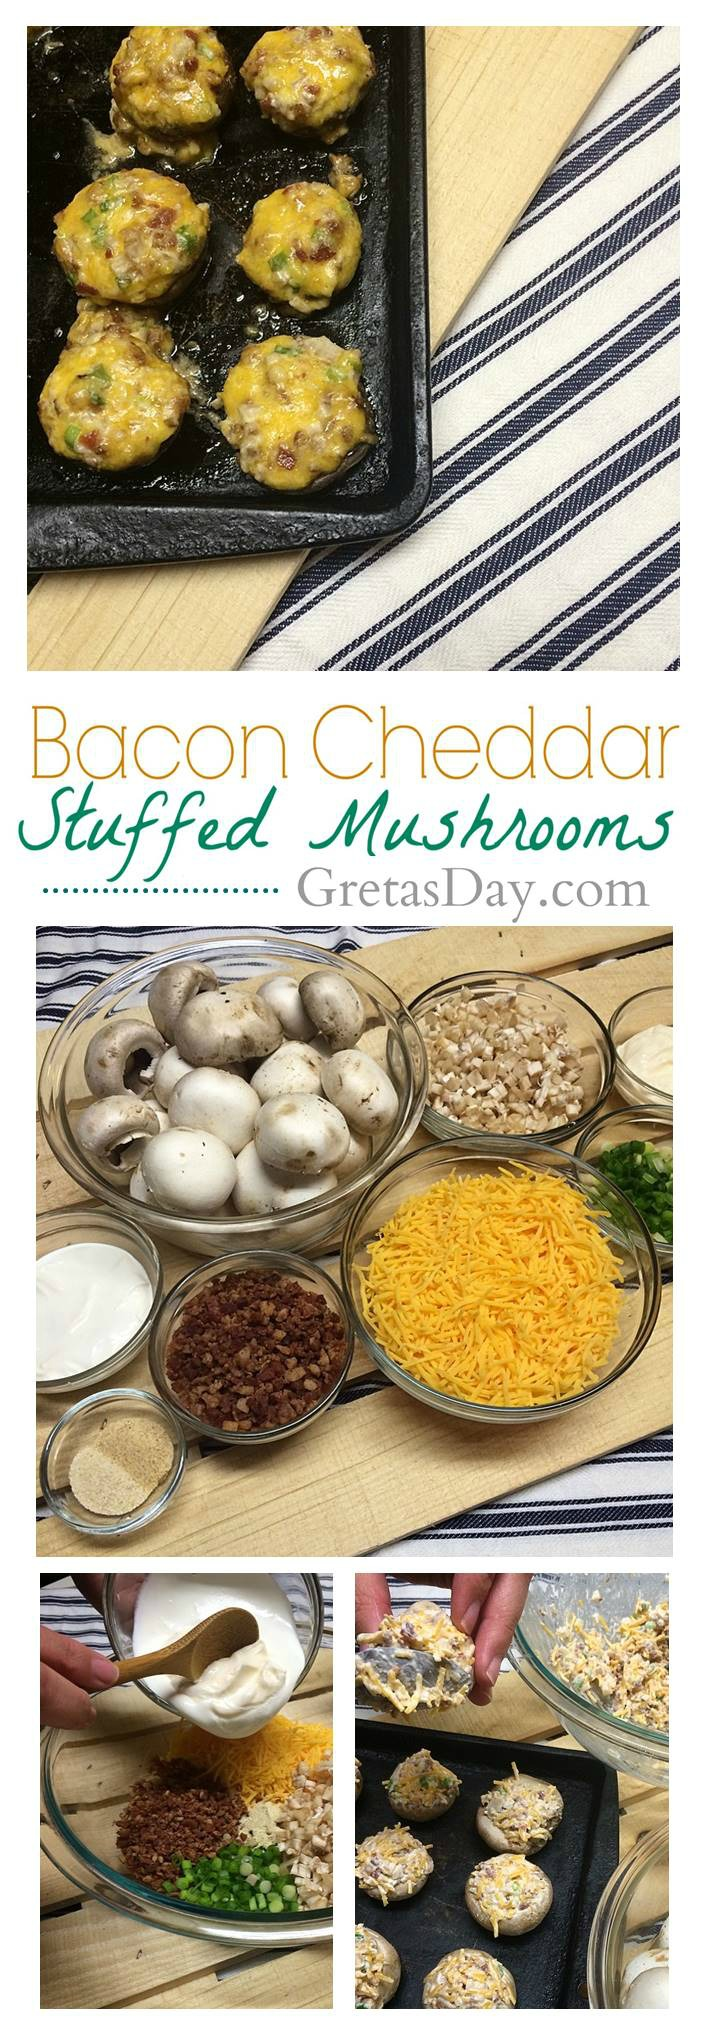 Hw to make the best bacon cheddar stuffed mushrooms